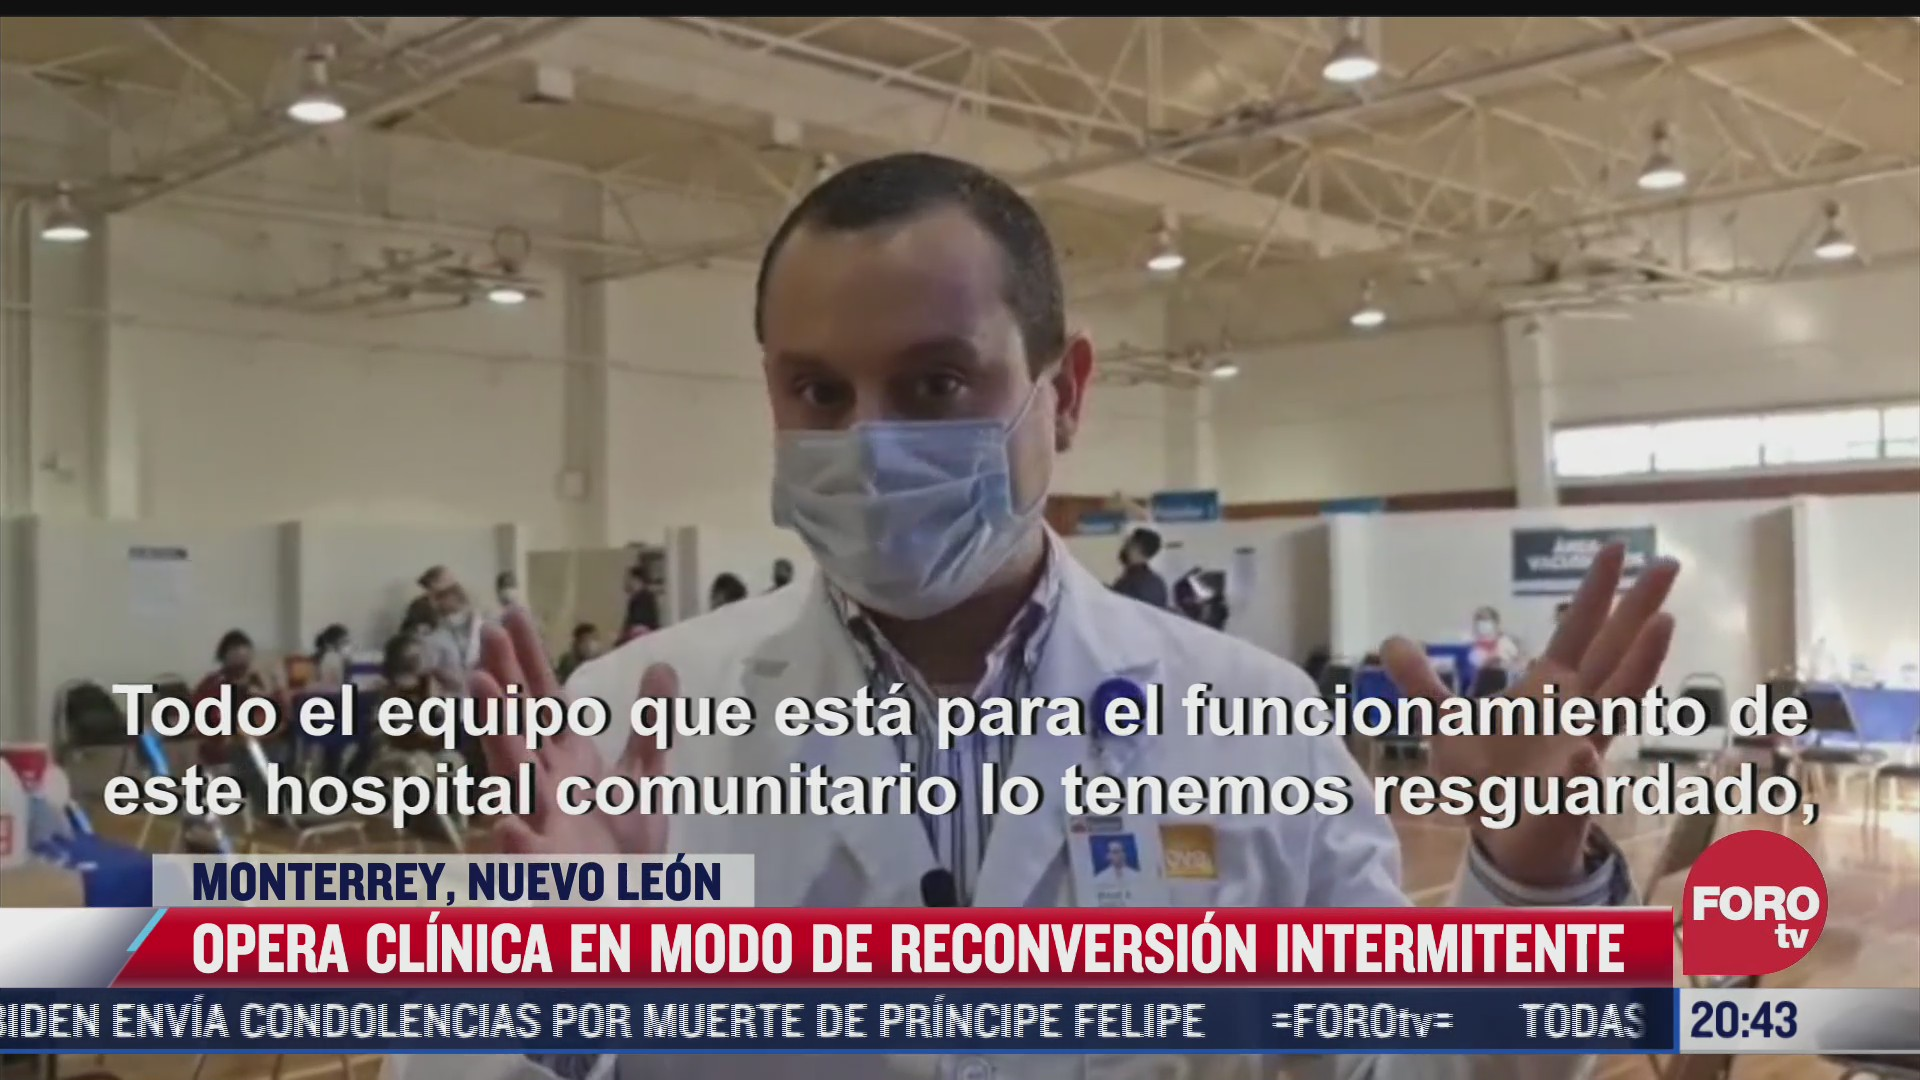 que es una clinica en modo de reconversion intermitente